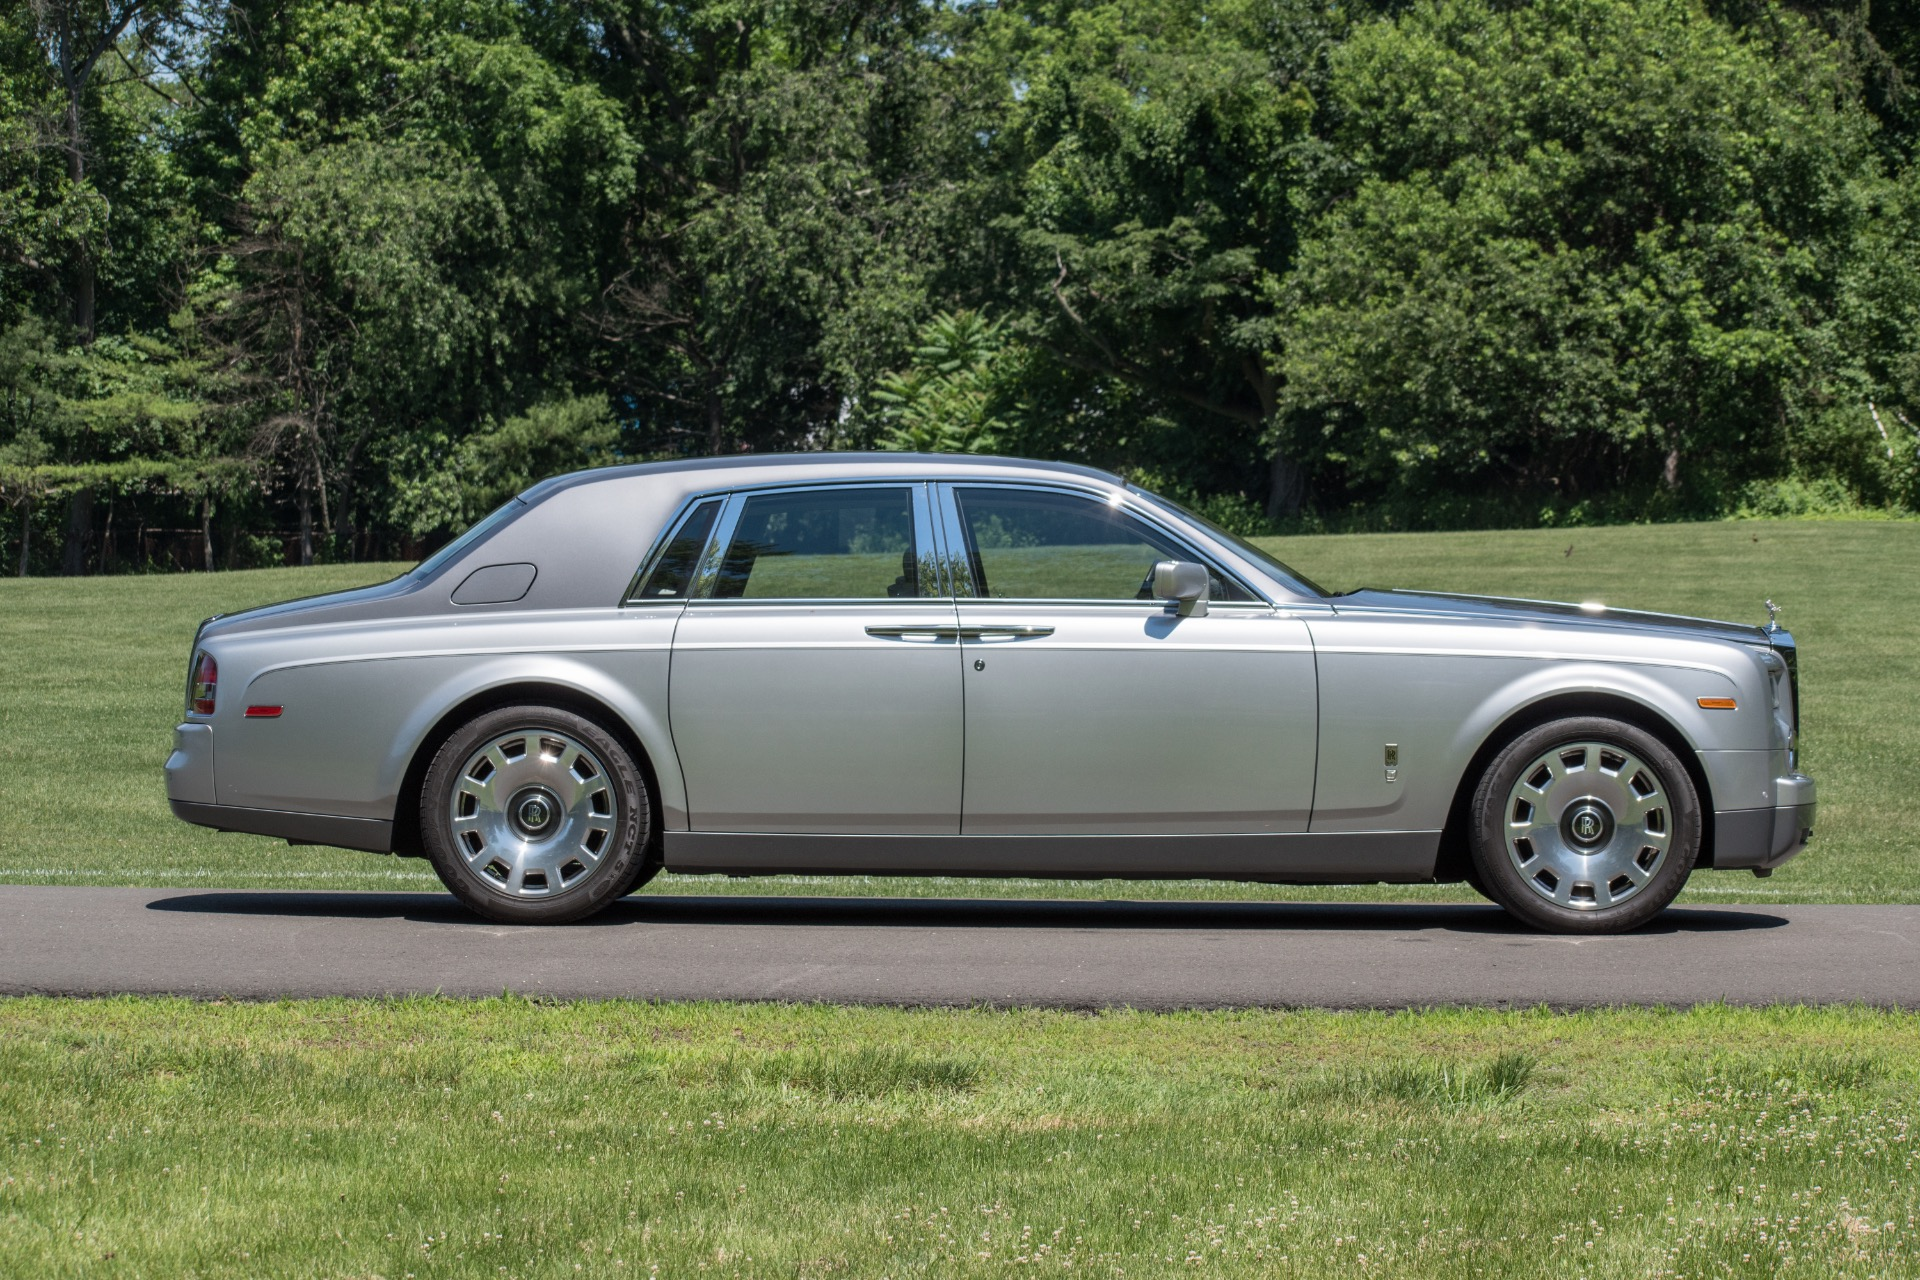 turbo r phantom cars ltd sherwood bentley product for green motor img sale